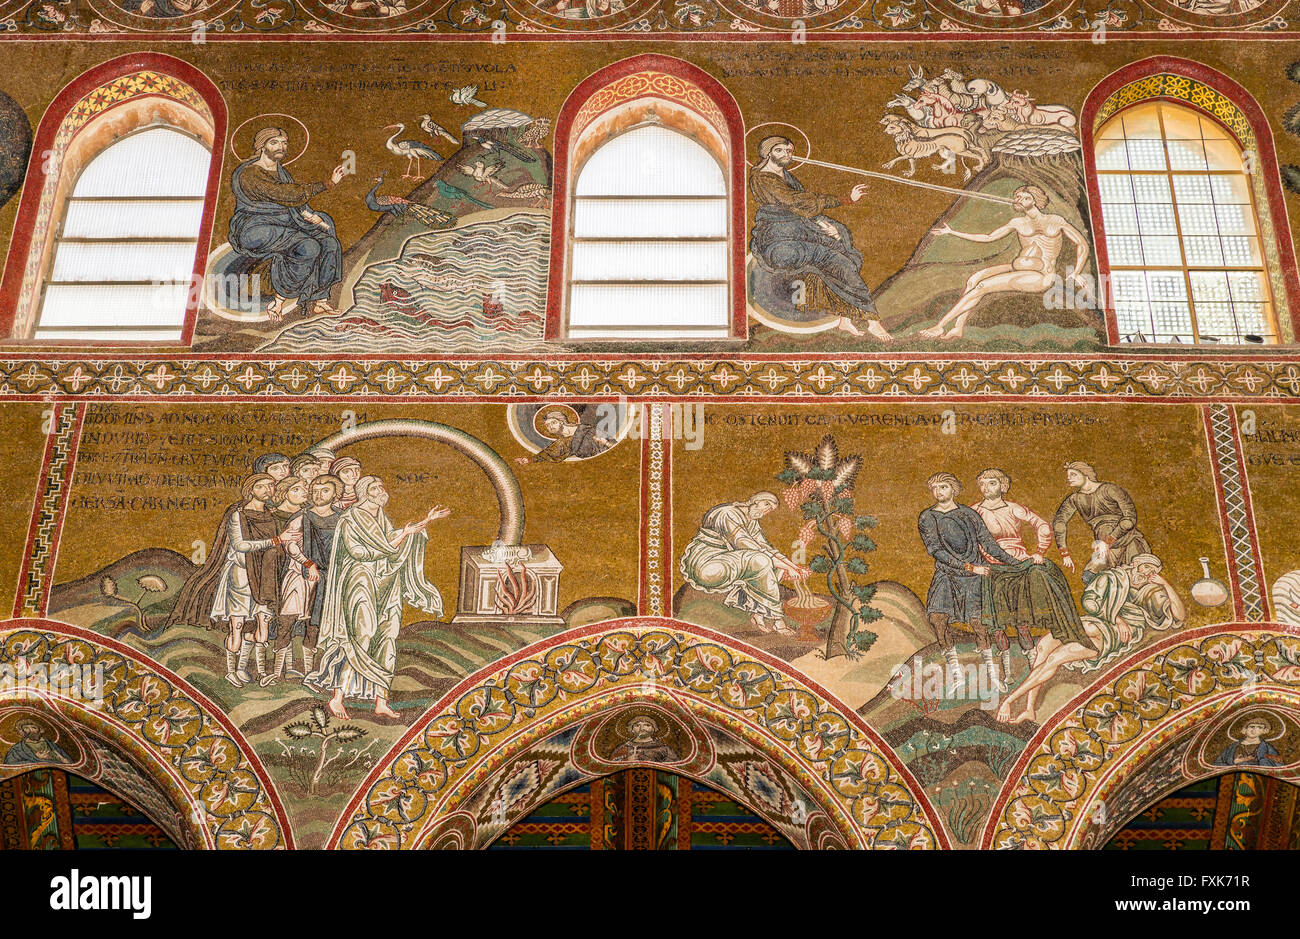 Byzantine mosaics, God creates life, animals and humans, below God's Covenant with Humanity, Drunkenness of Noah, - Stock Image